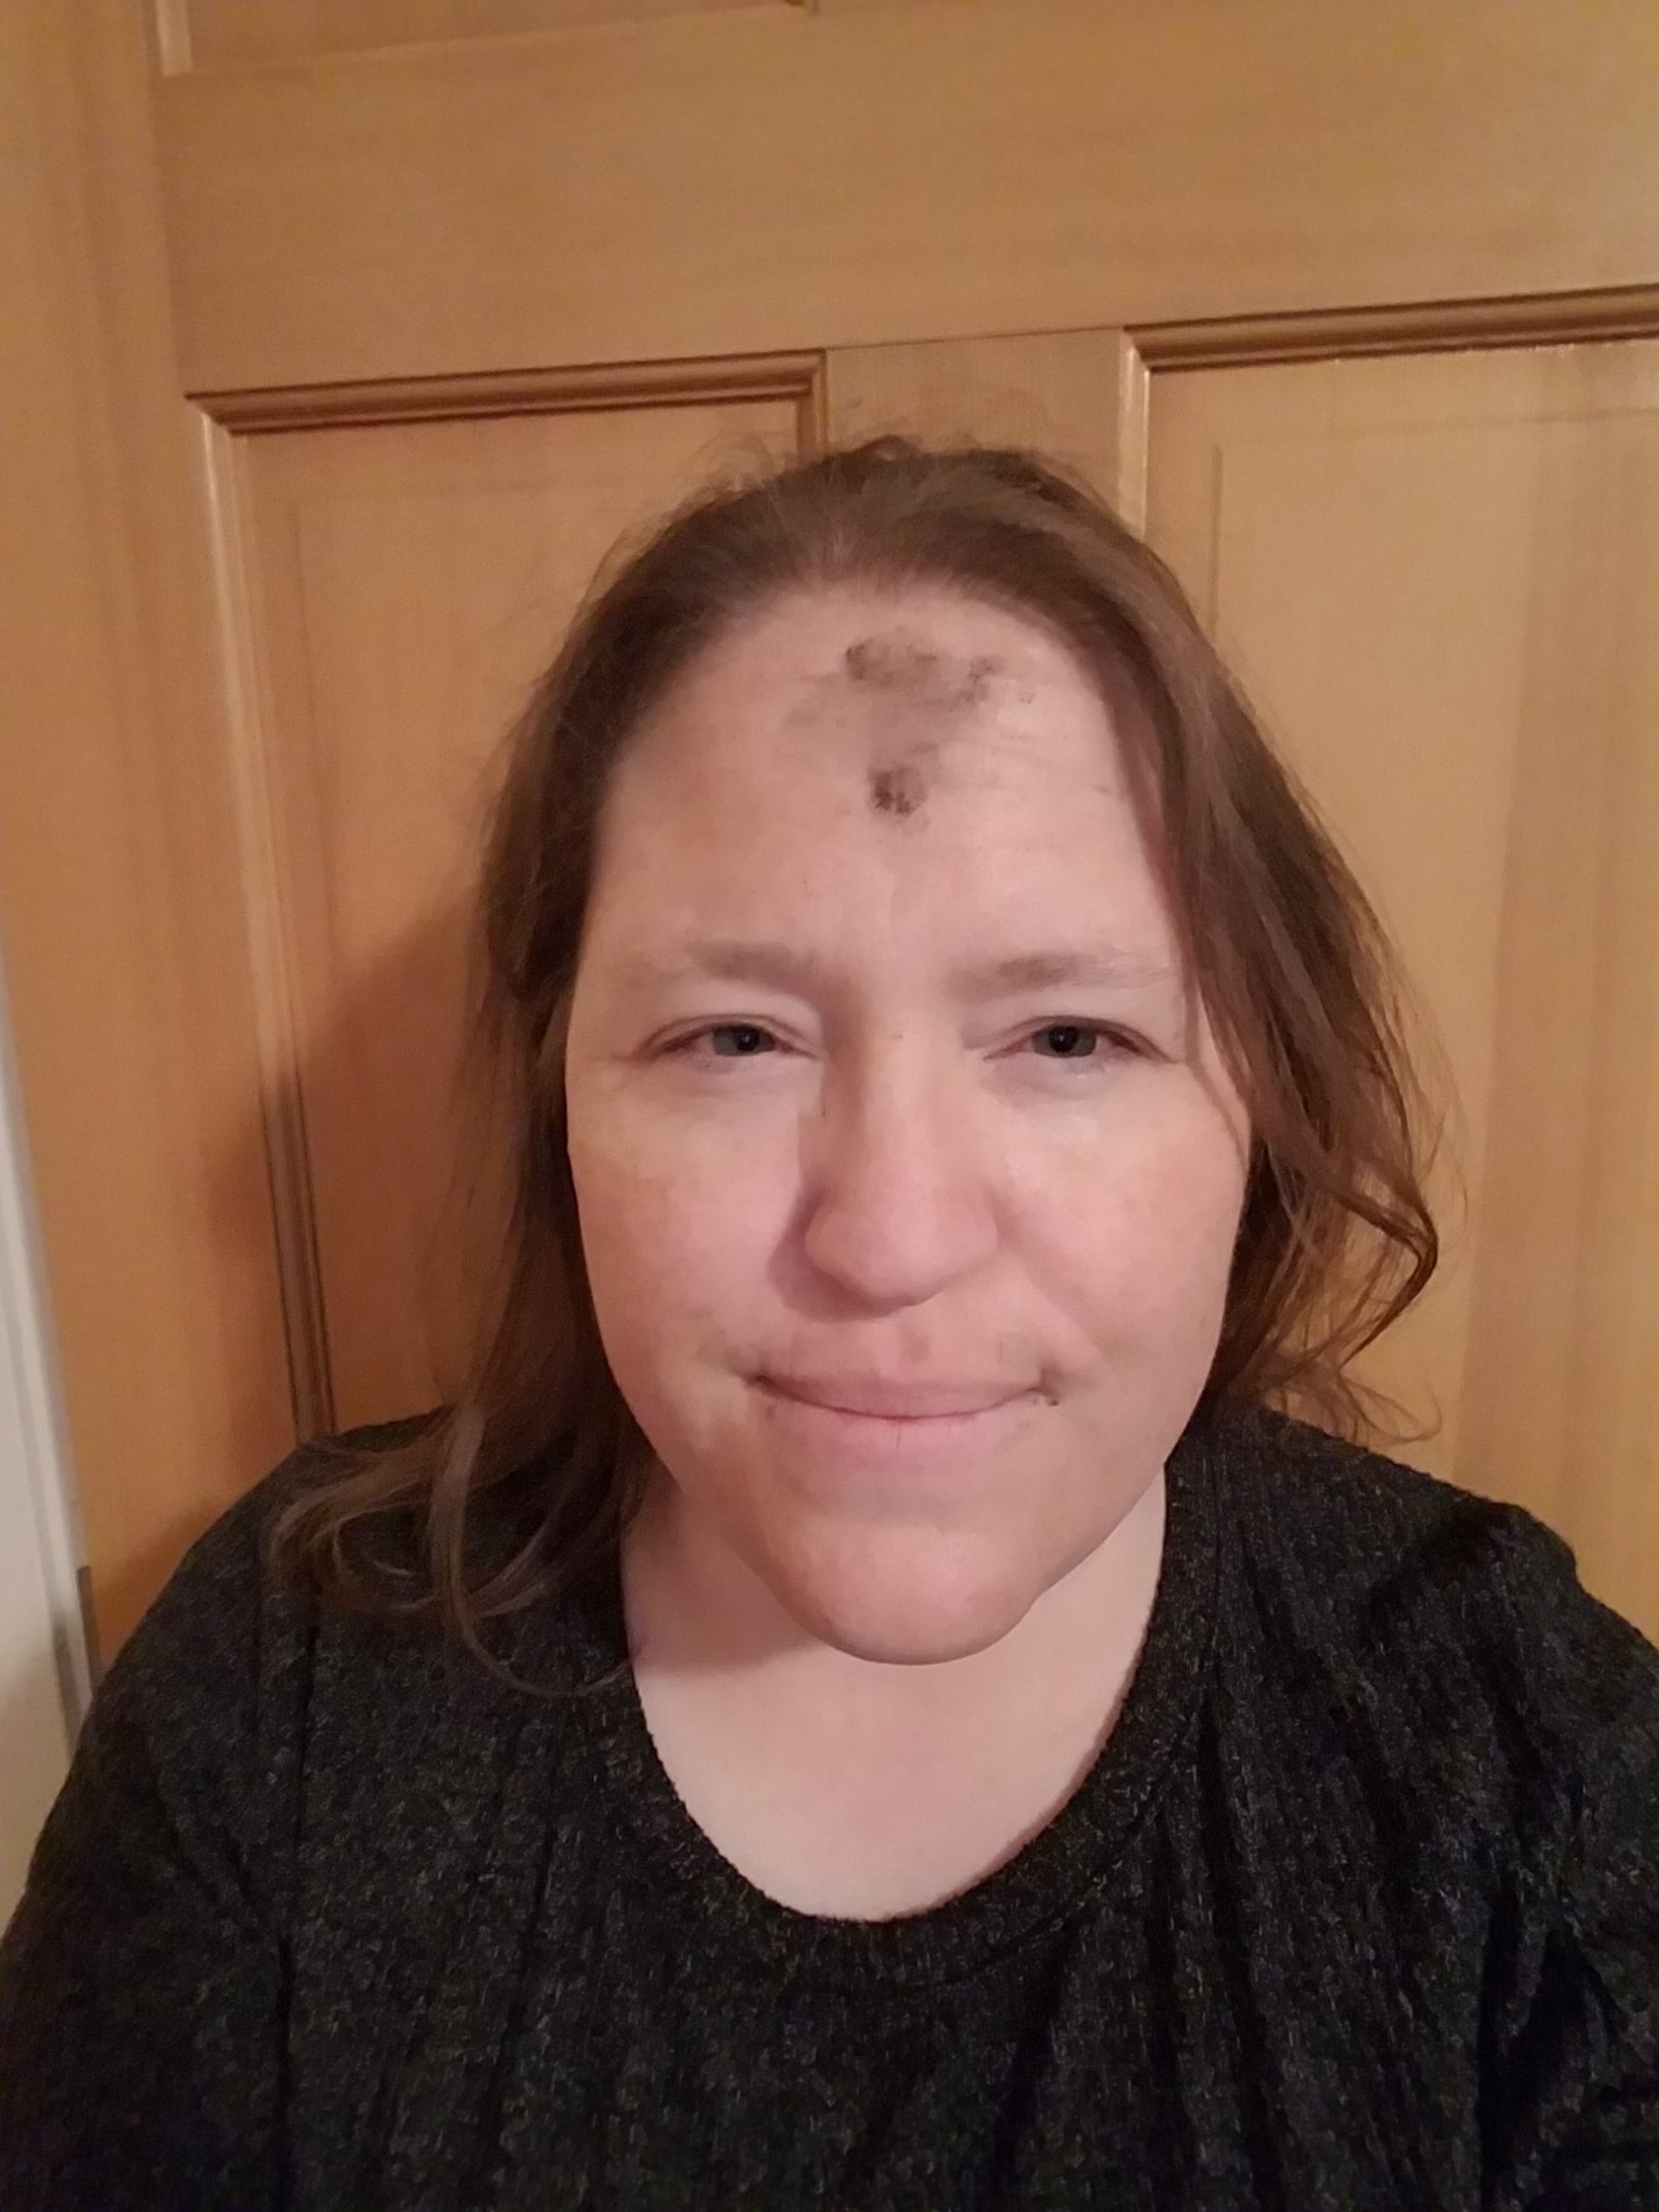 My #ashtag.